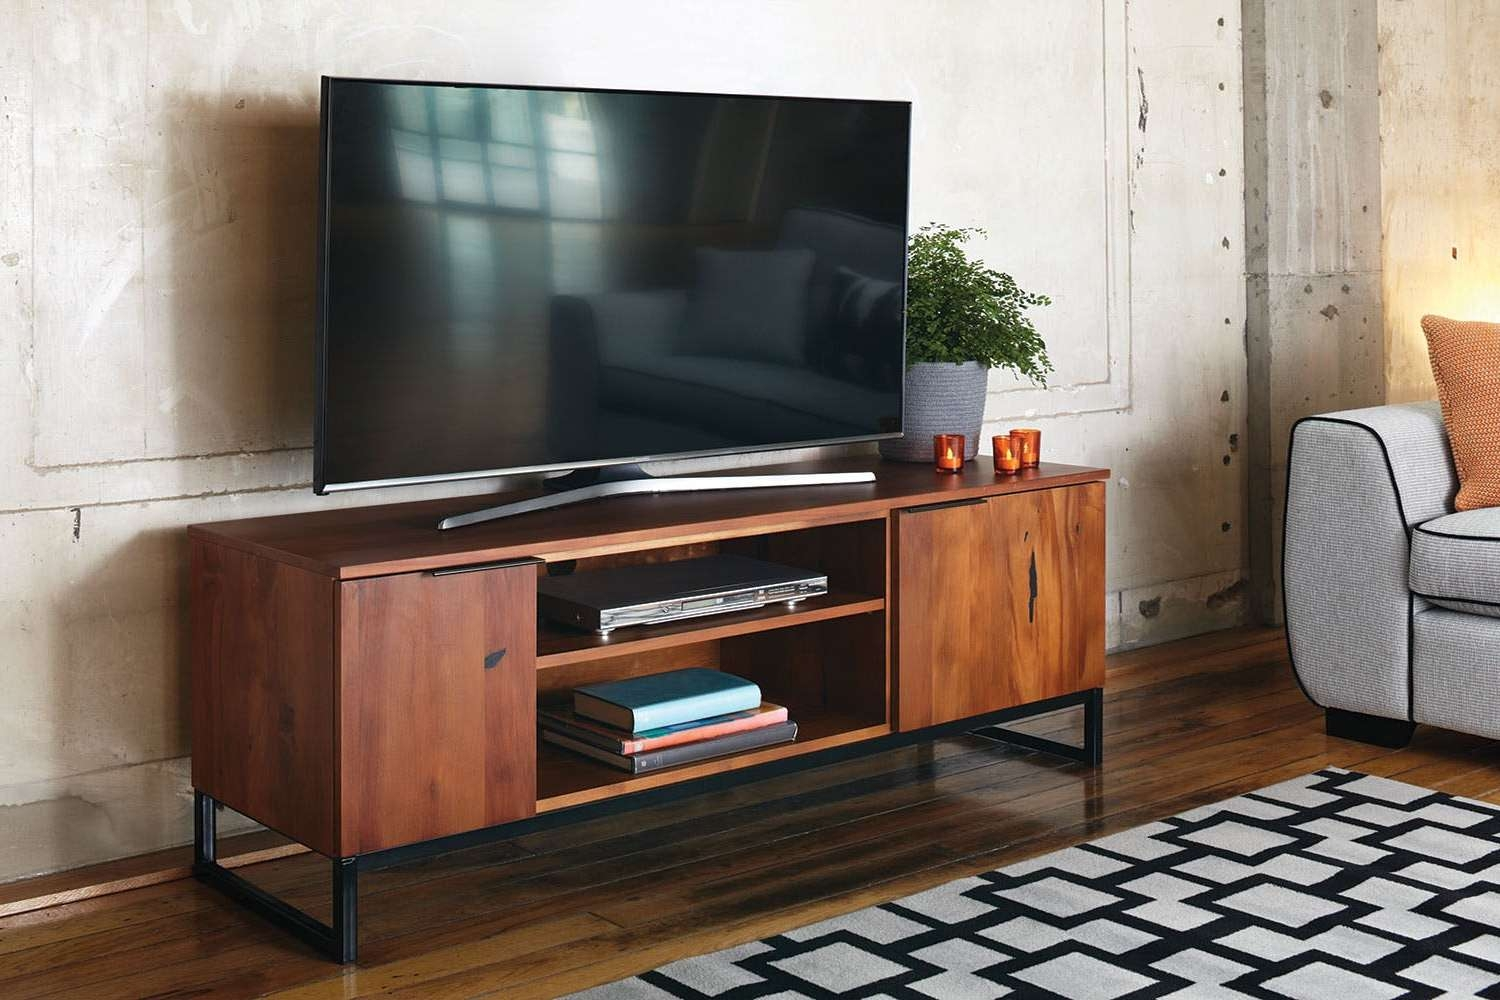 Supreme Flat Screen Narrow Tv Stand And Magazine Shelf Brown With Regard To Honey Oak Tv Stands (View 6 of 15)